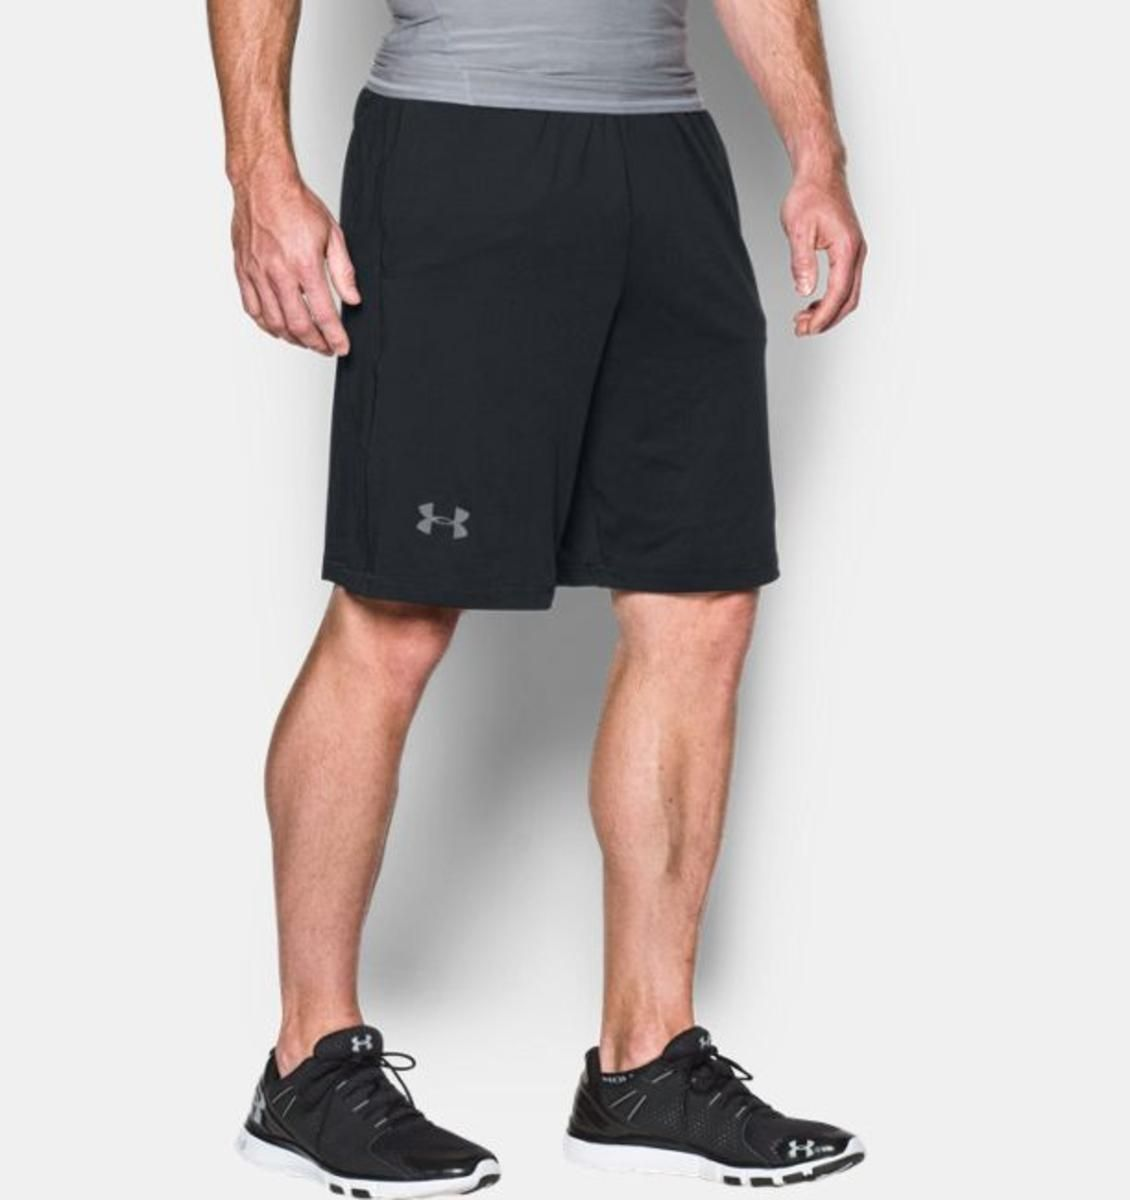 BLACK Mens Under Armour Guide Shorts 30